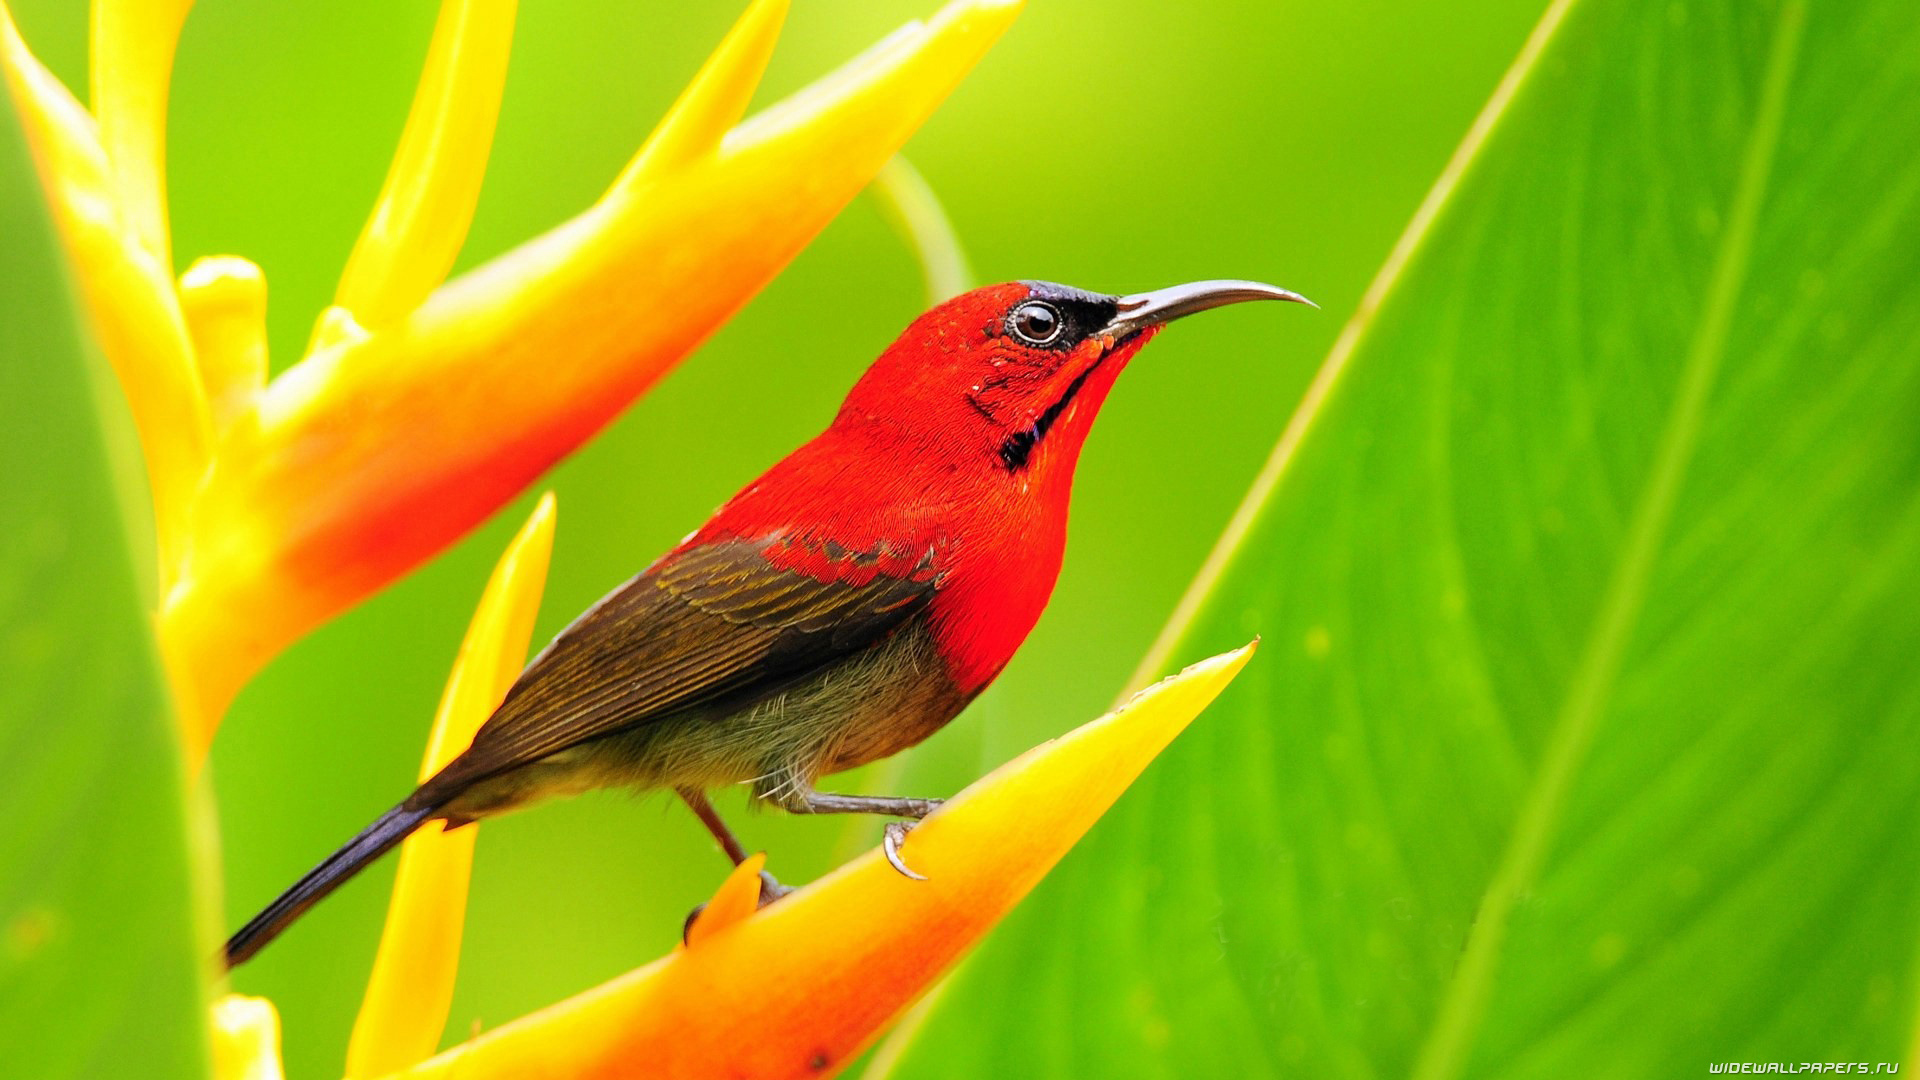 picture of bird wallpapers (42 wallpapers) – adorable wallpapers